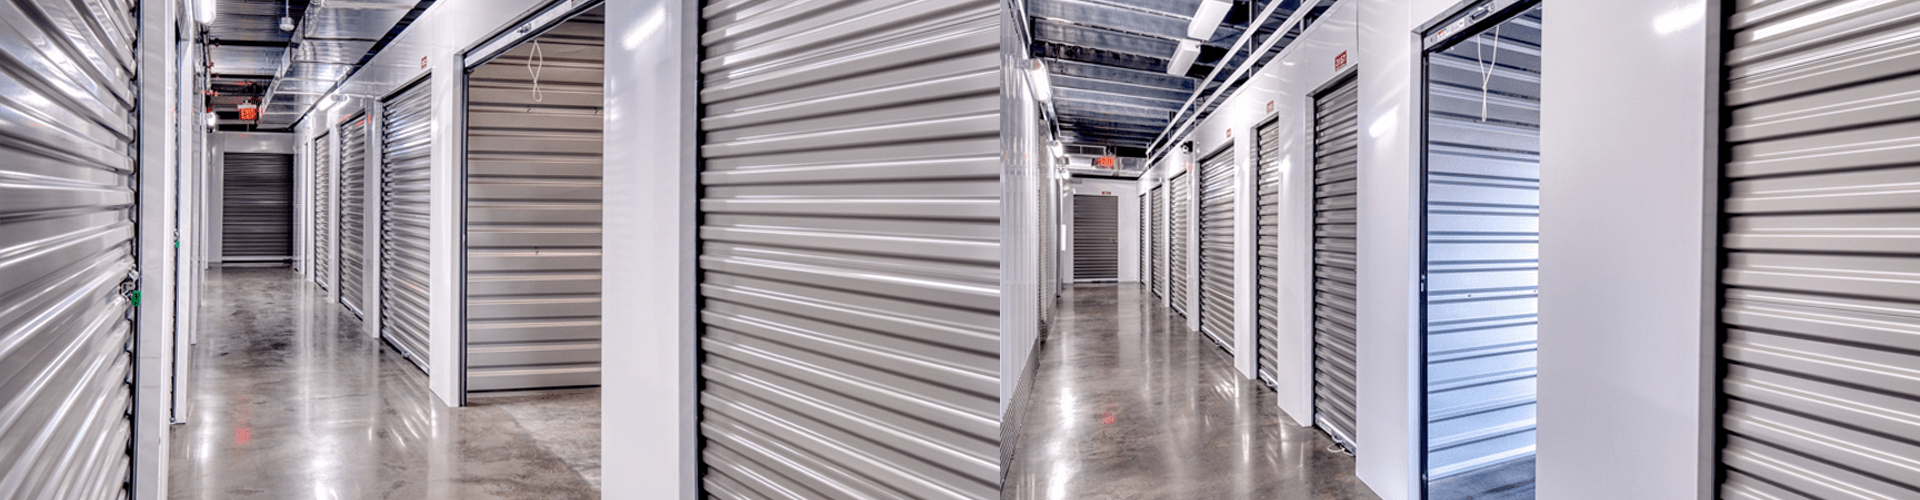 Storage Units in Cranberry Township PA